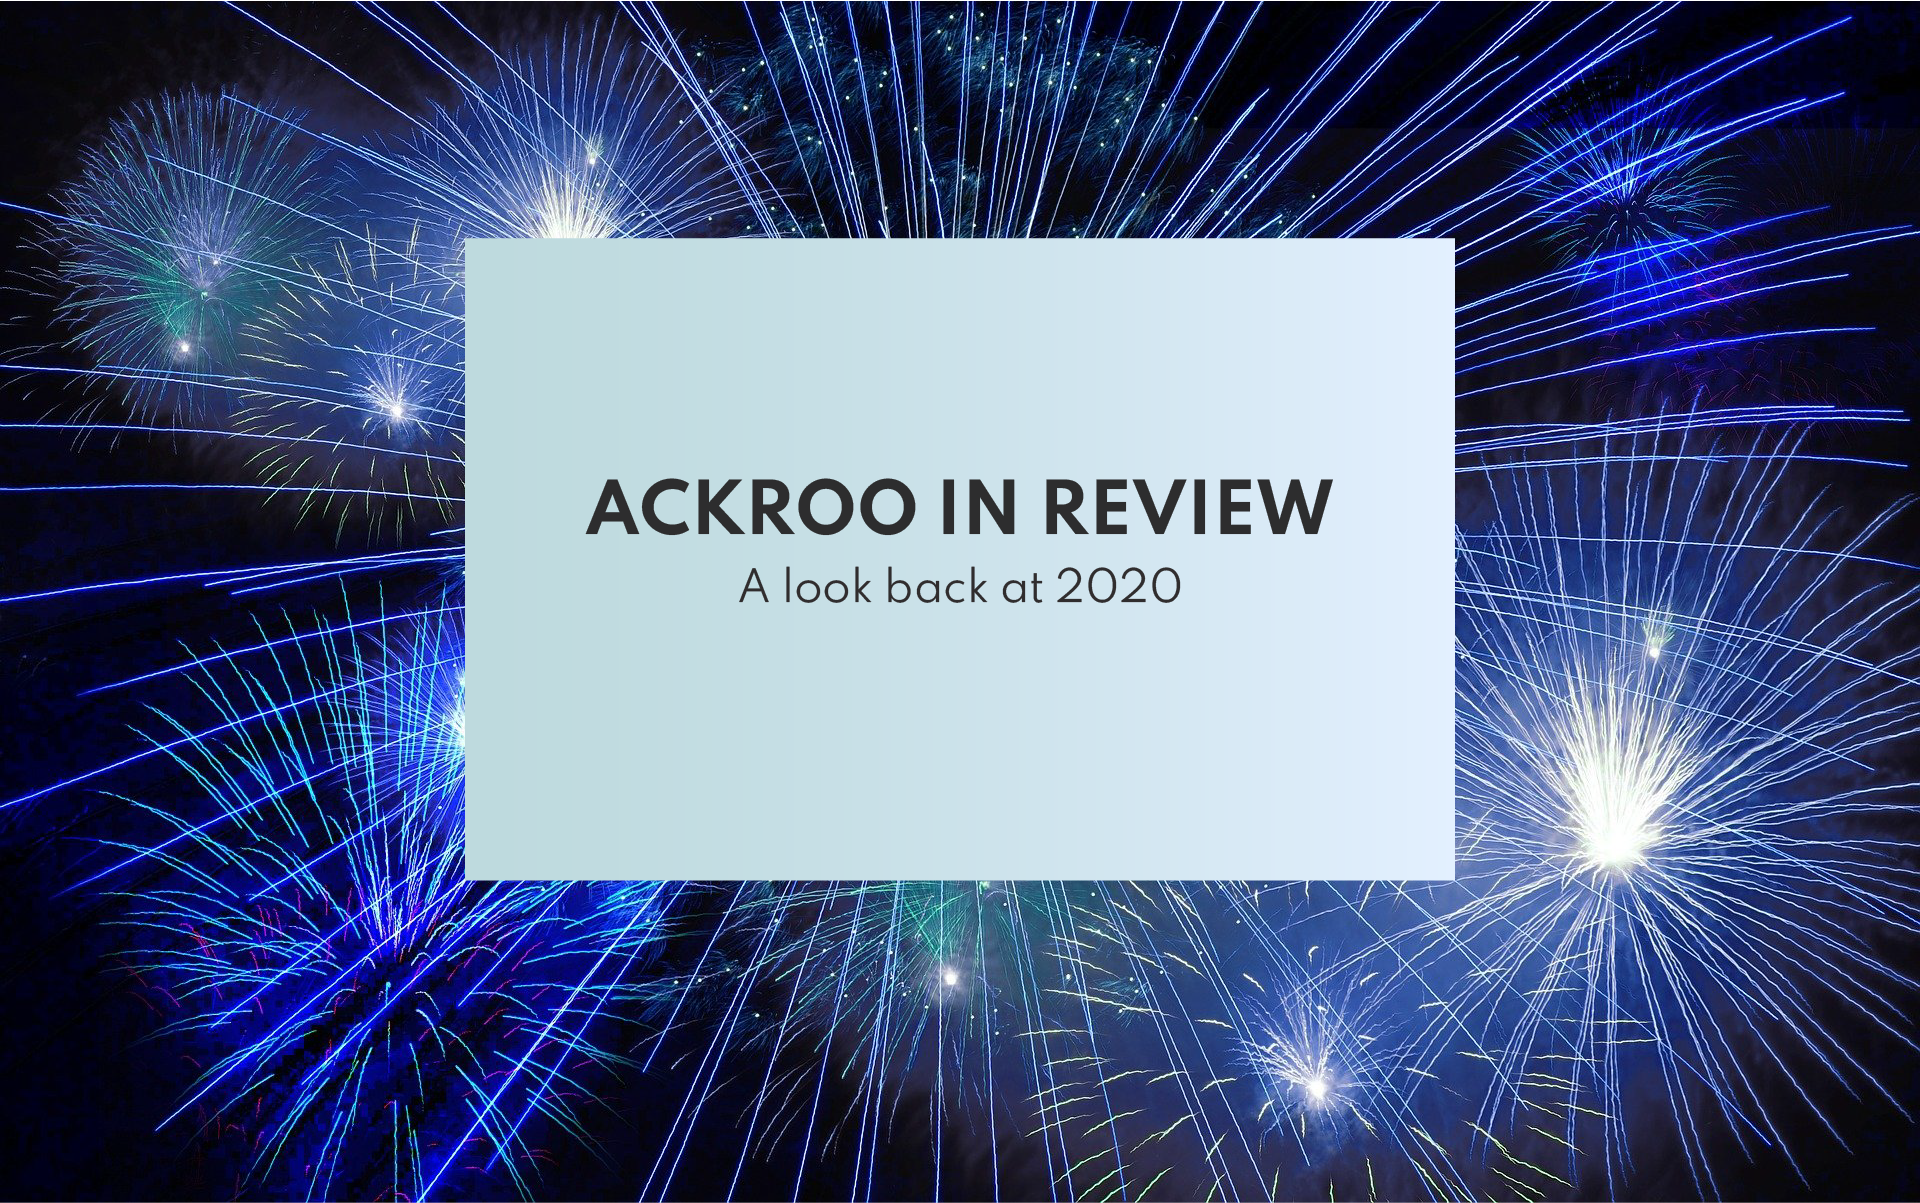 Ackroo in review